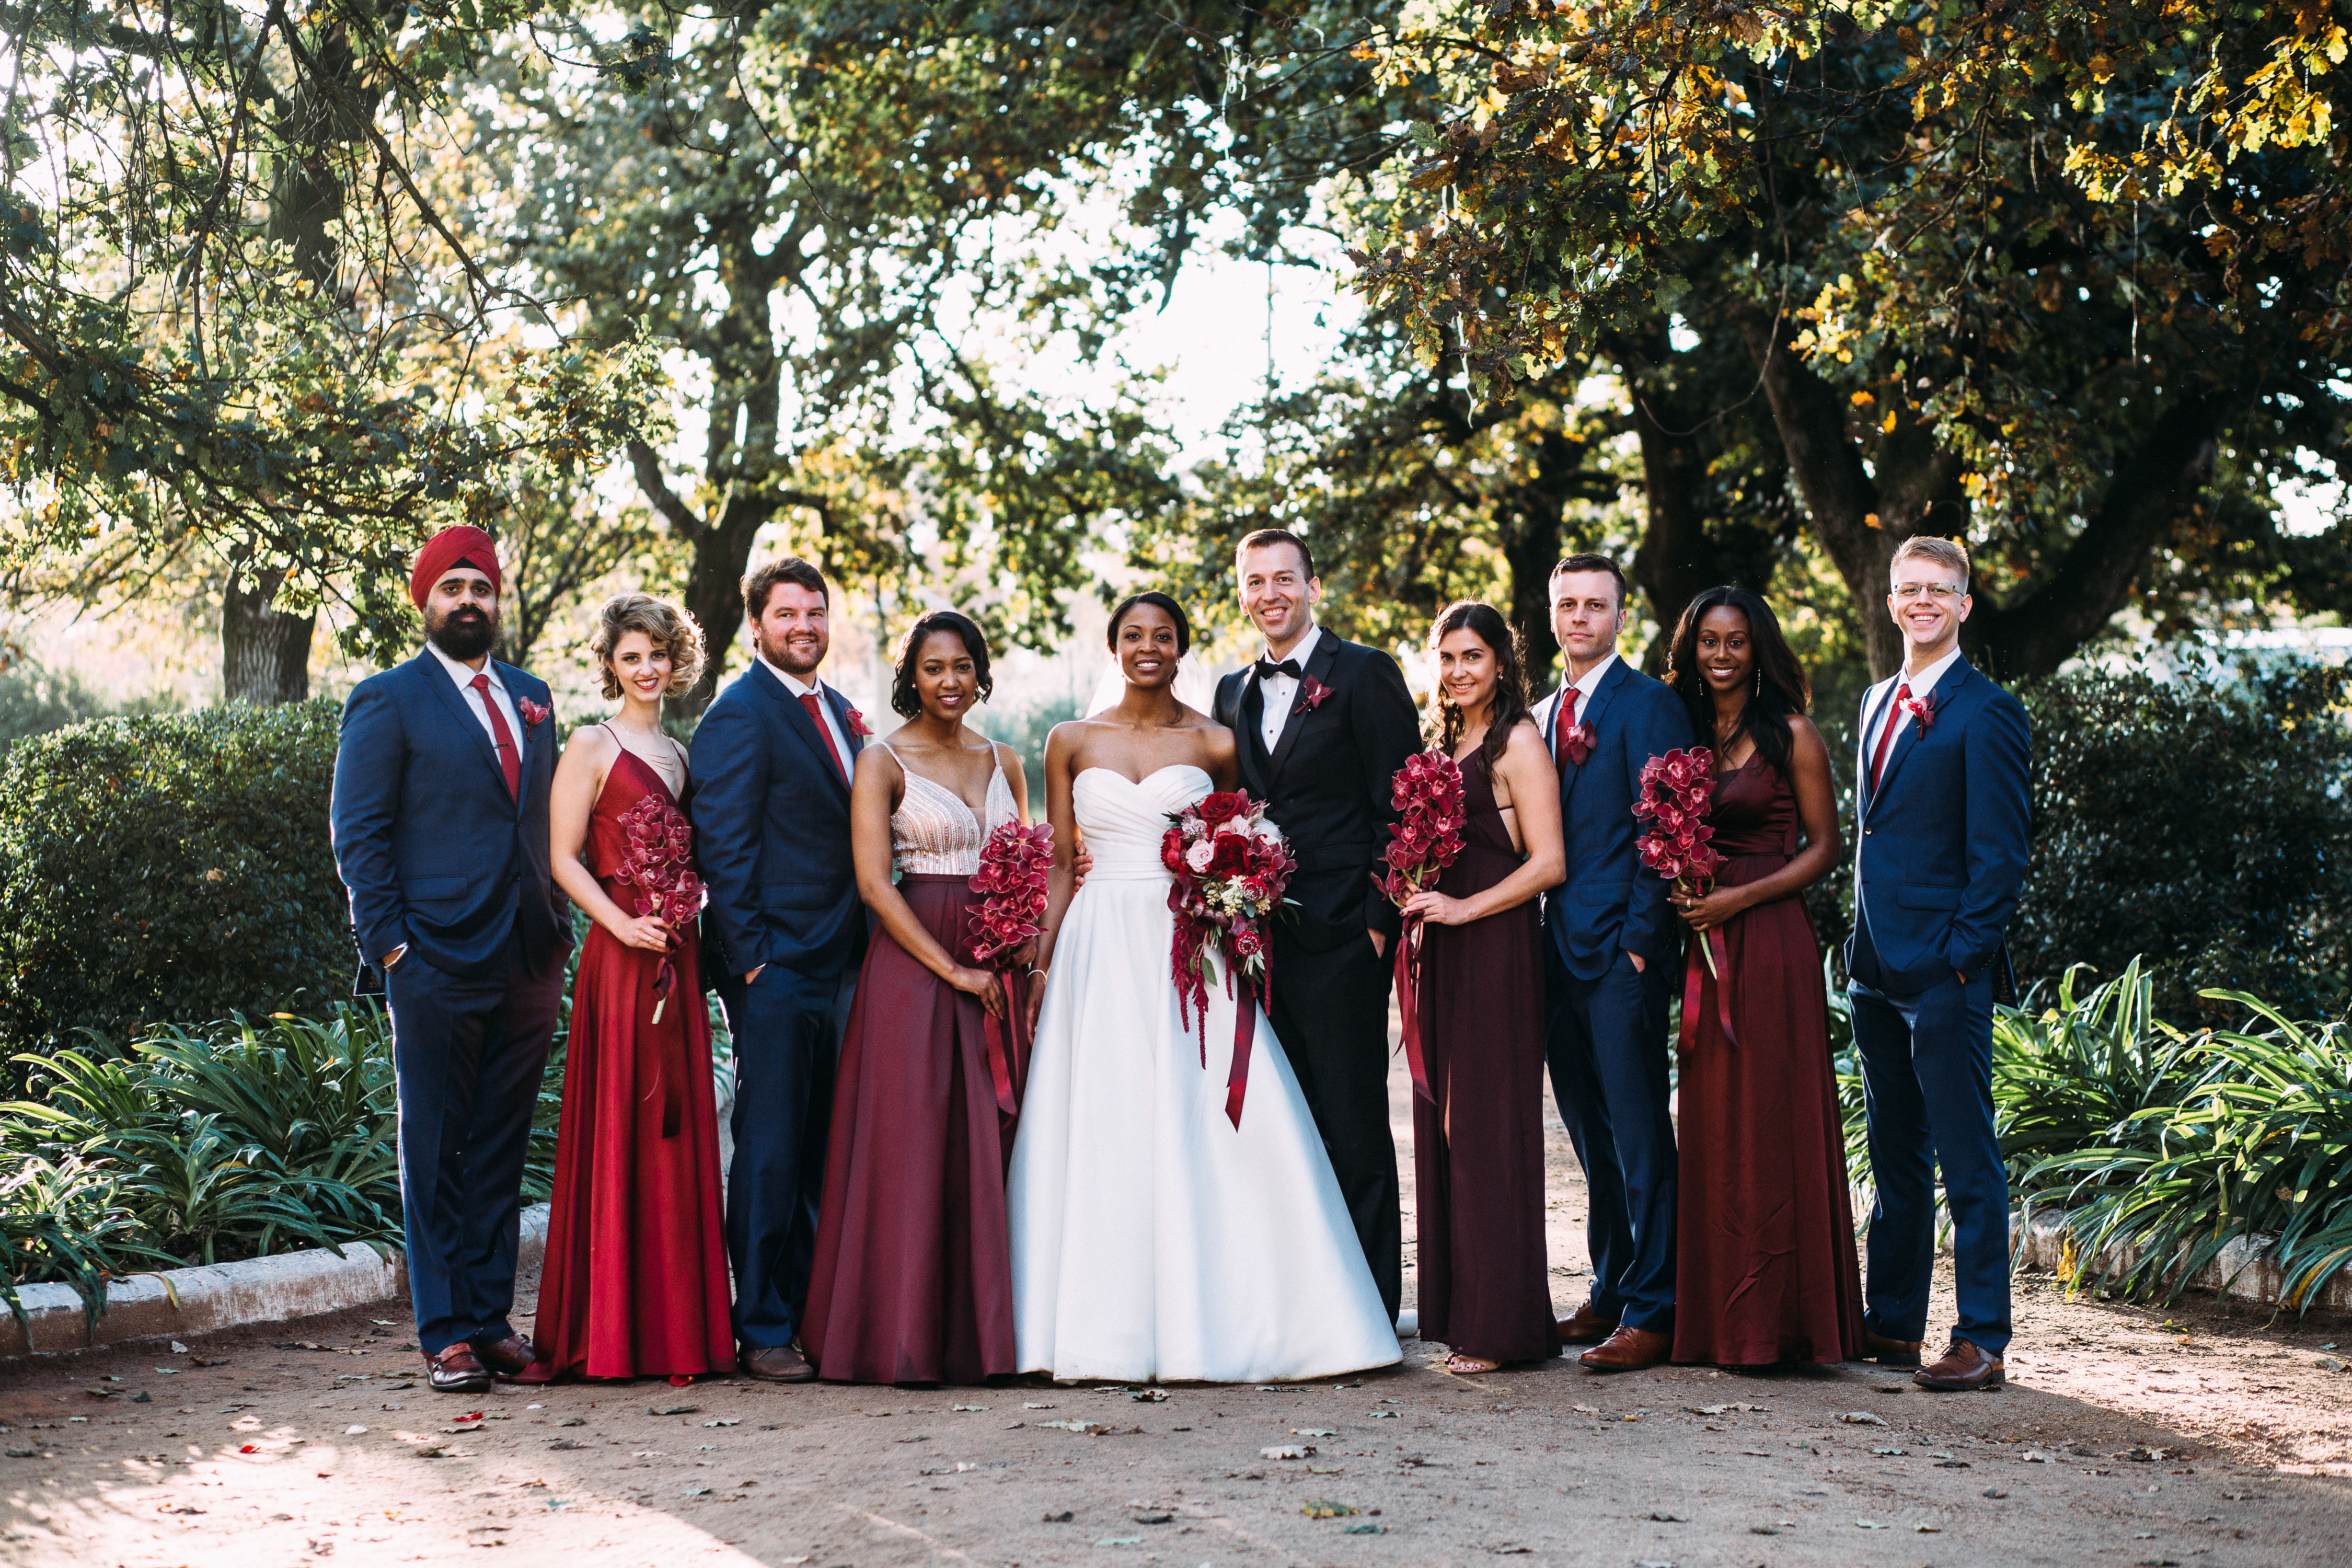 yolana douglas wedding party bride groom bridesmaids groomsmen